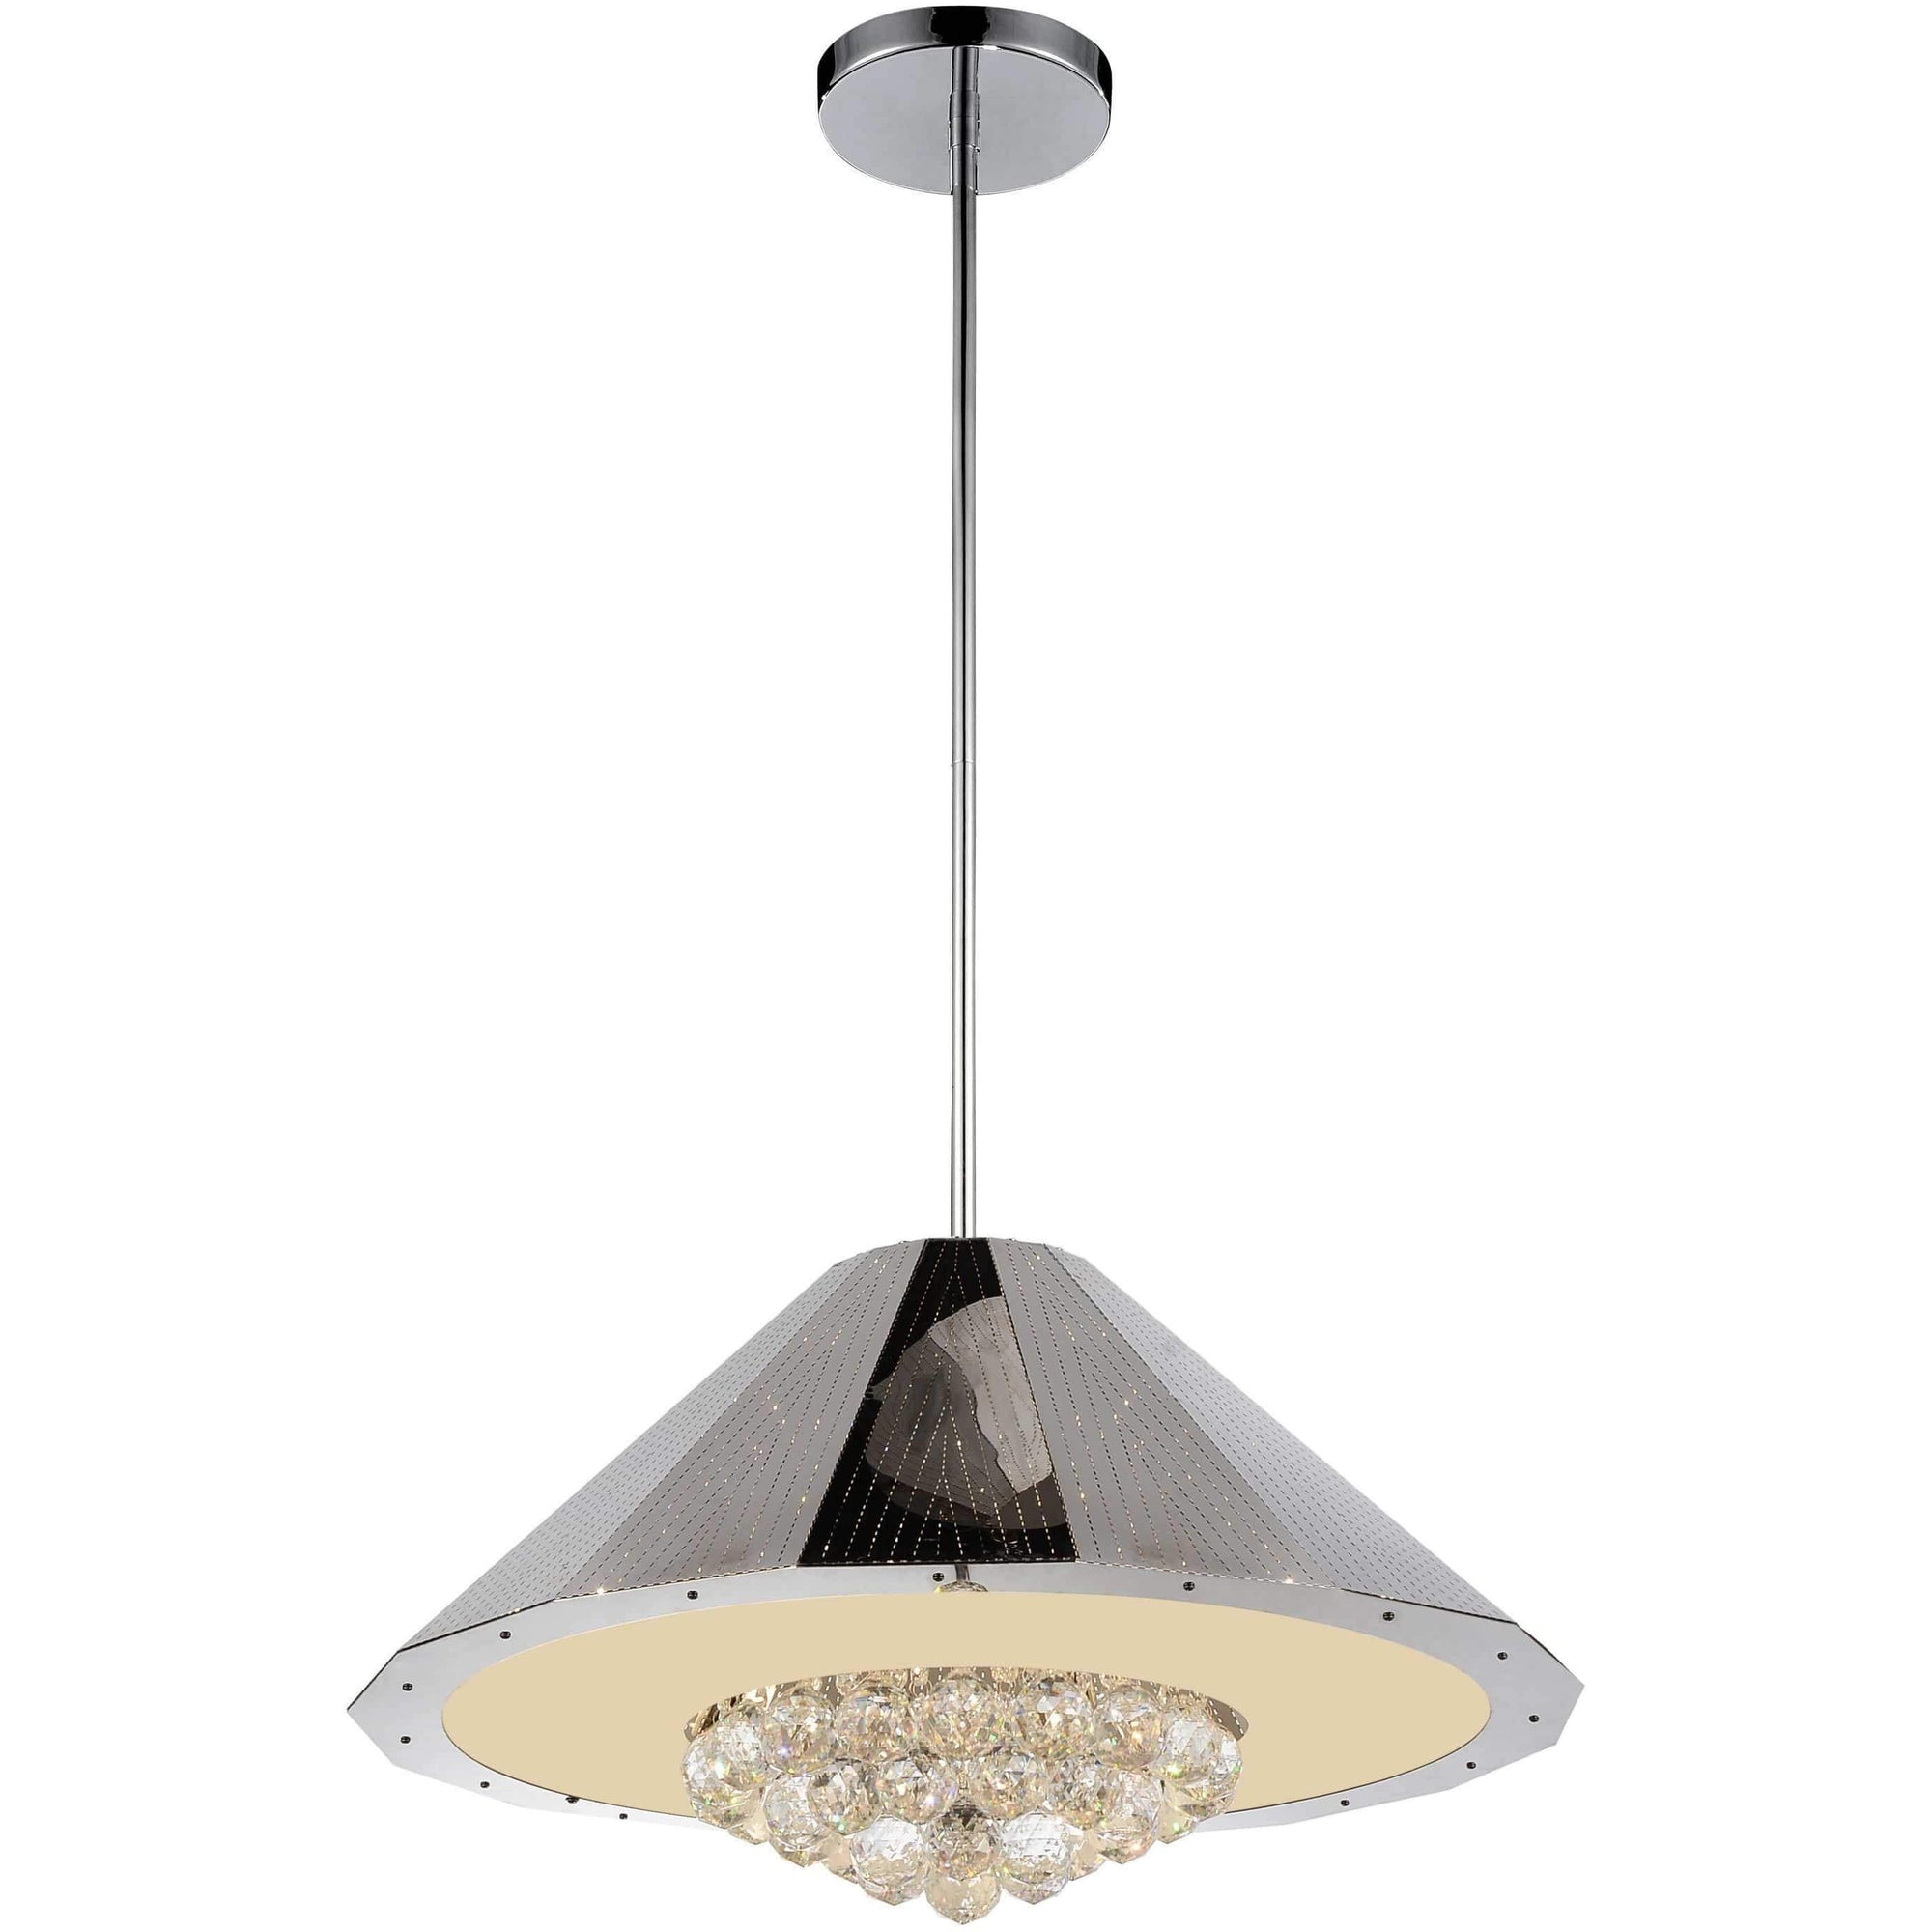 CWI Lighting Chandeliers Chrome Yangtze 9 Light Down Chandelier with Chrome finish by CWI Lighting 5666P25C